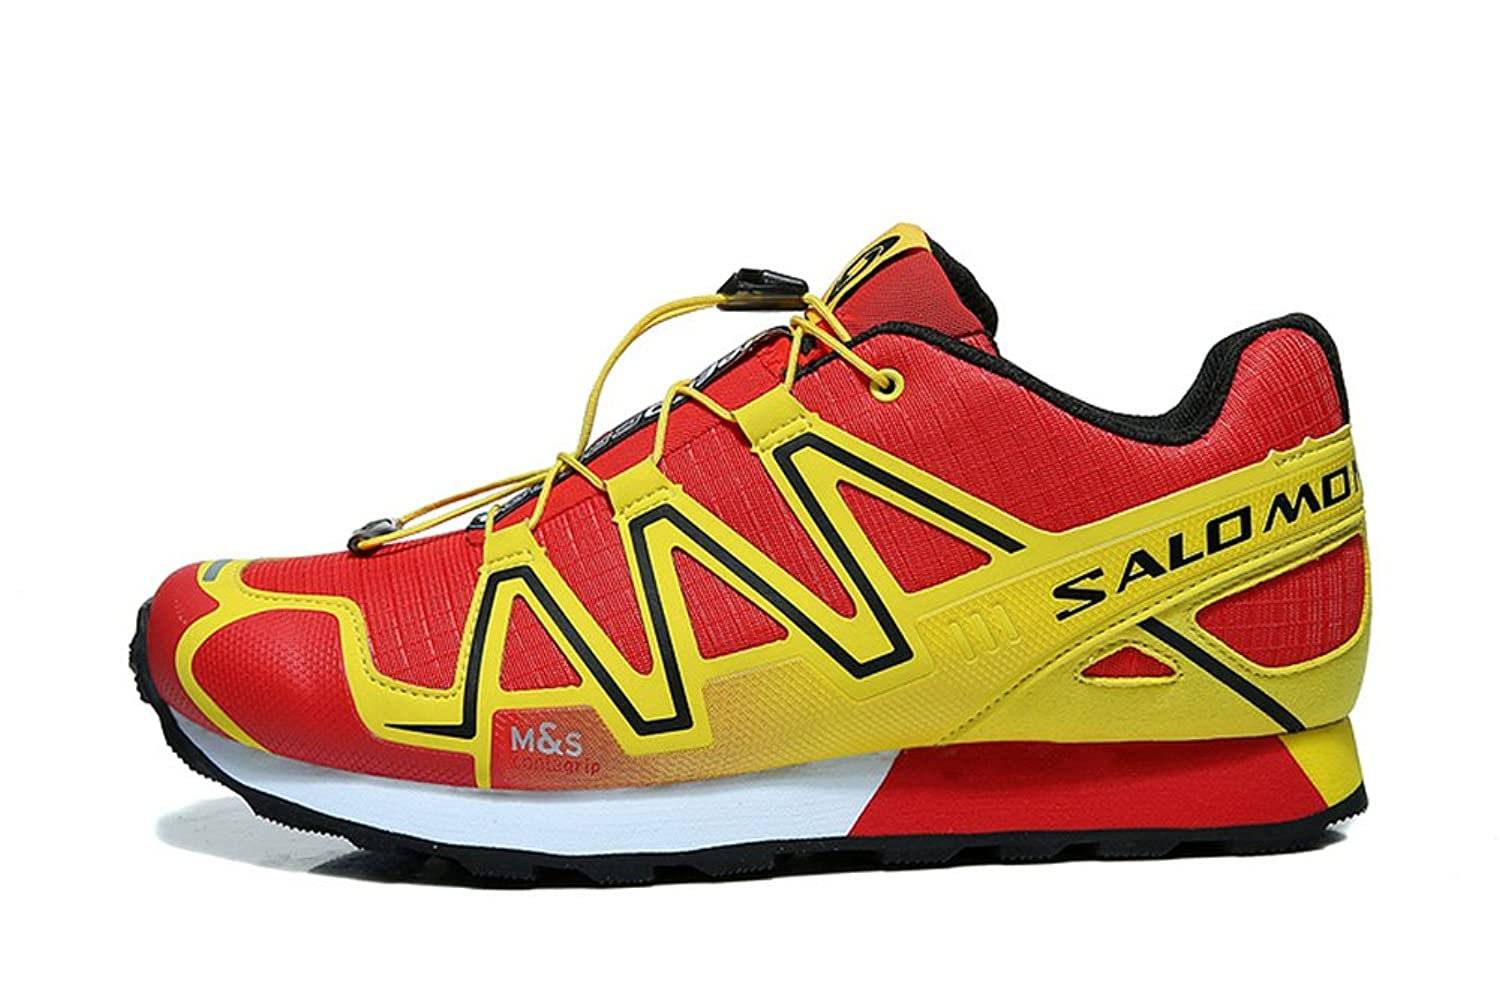 Speedcross 4 Men's Cross Country Shoes ZYWW Outdoor Shoes Breathable Running Shoes